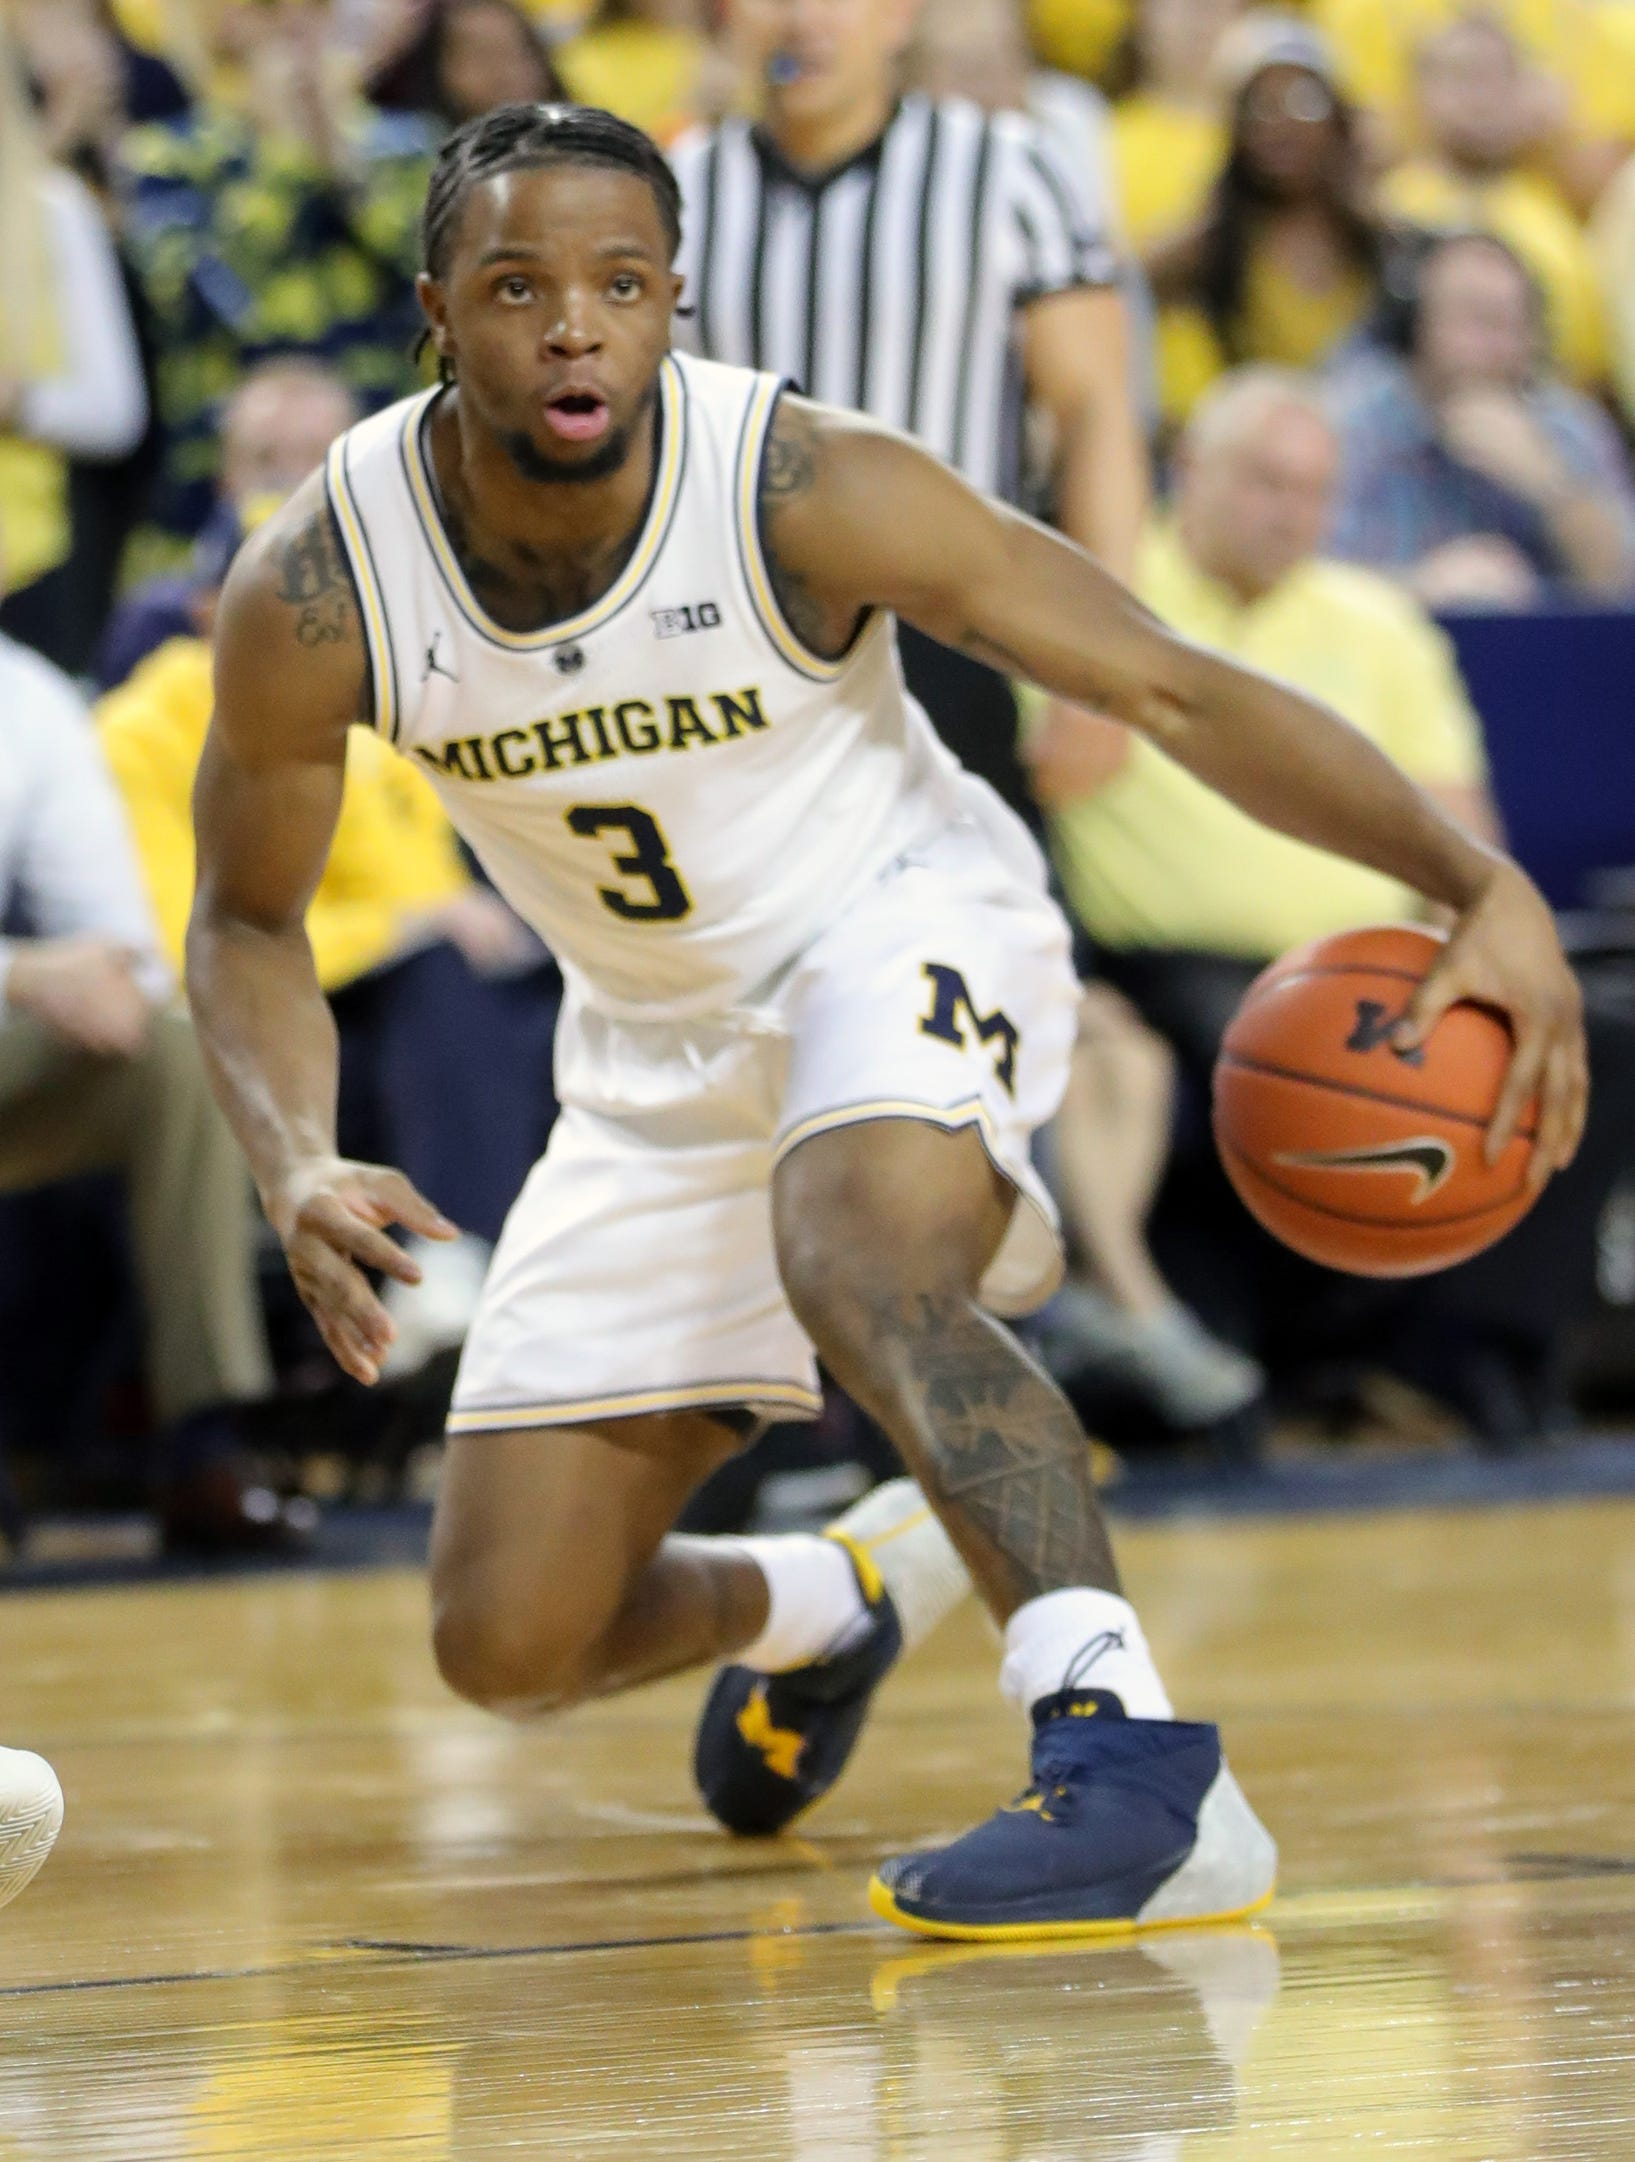 Michigan guard Zavier Simpson drives against Northwestern on Sunday, Jan. 13, 2019 at Crisler Center in Ann Arbor.